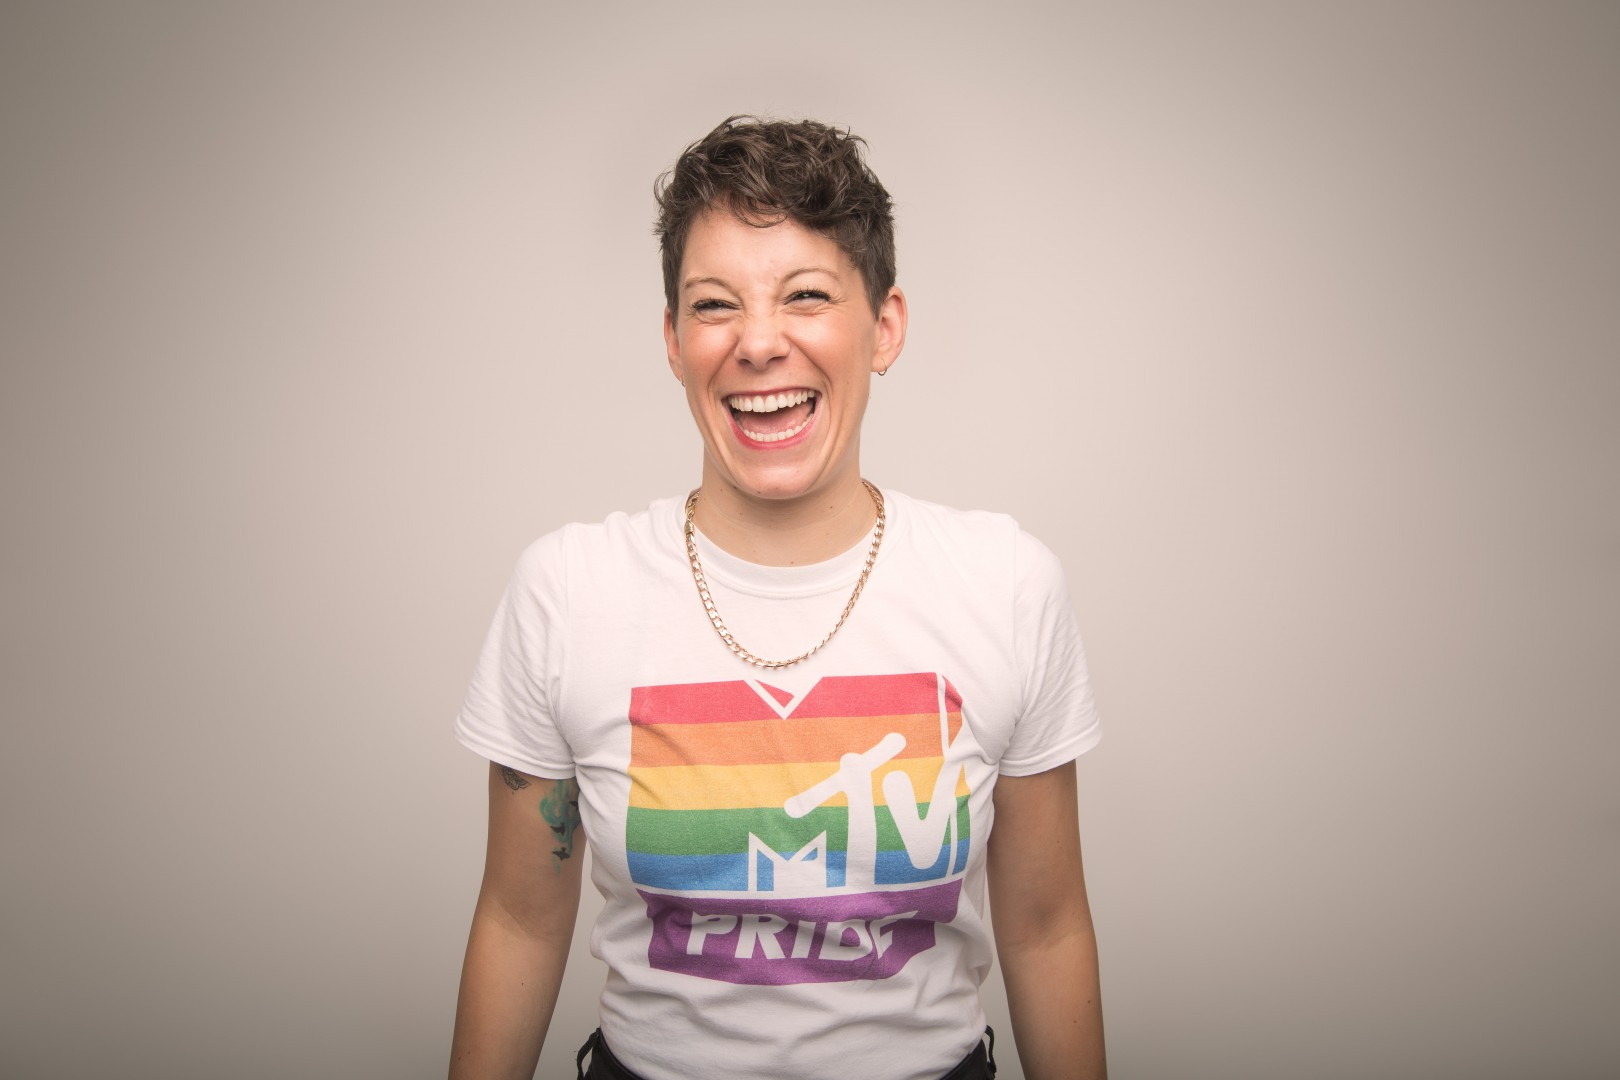 Suzi Ruffell Rationale in the Ridiculous MTV Pride Top